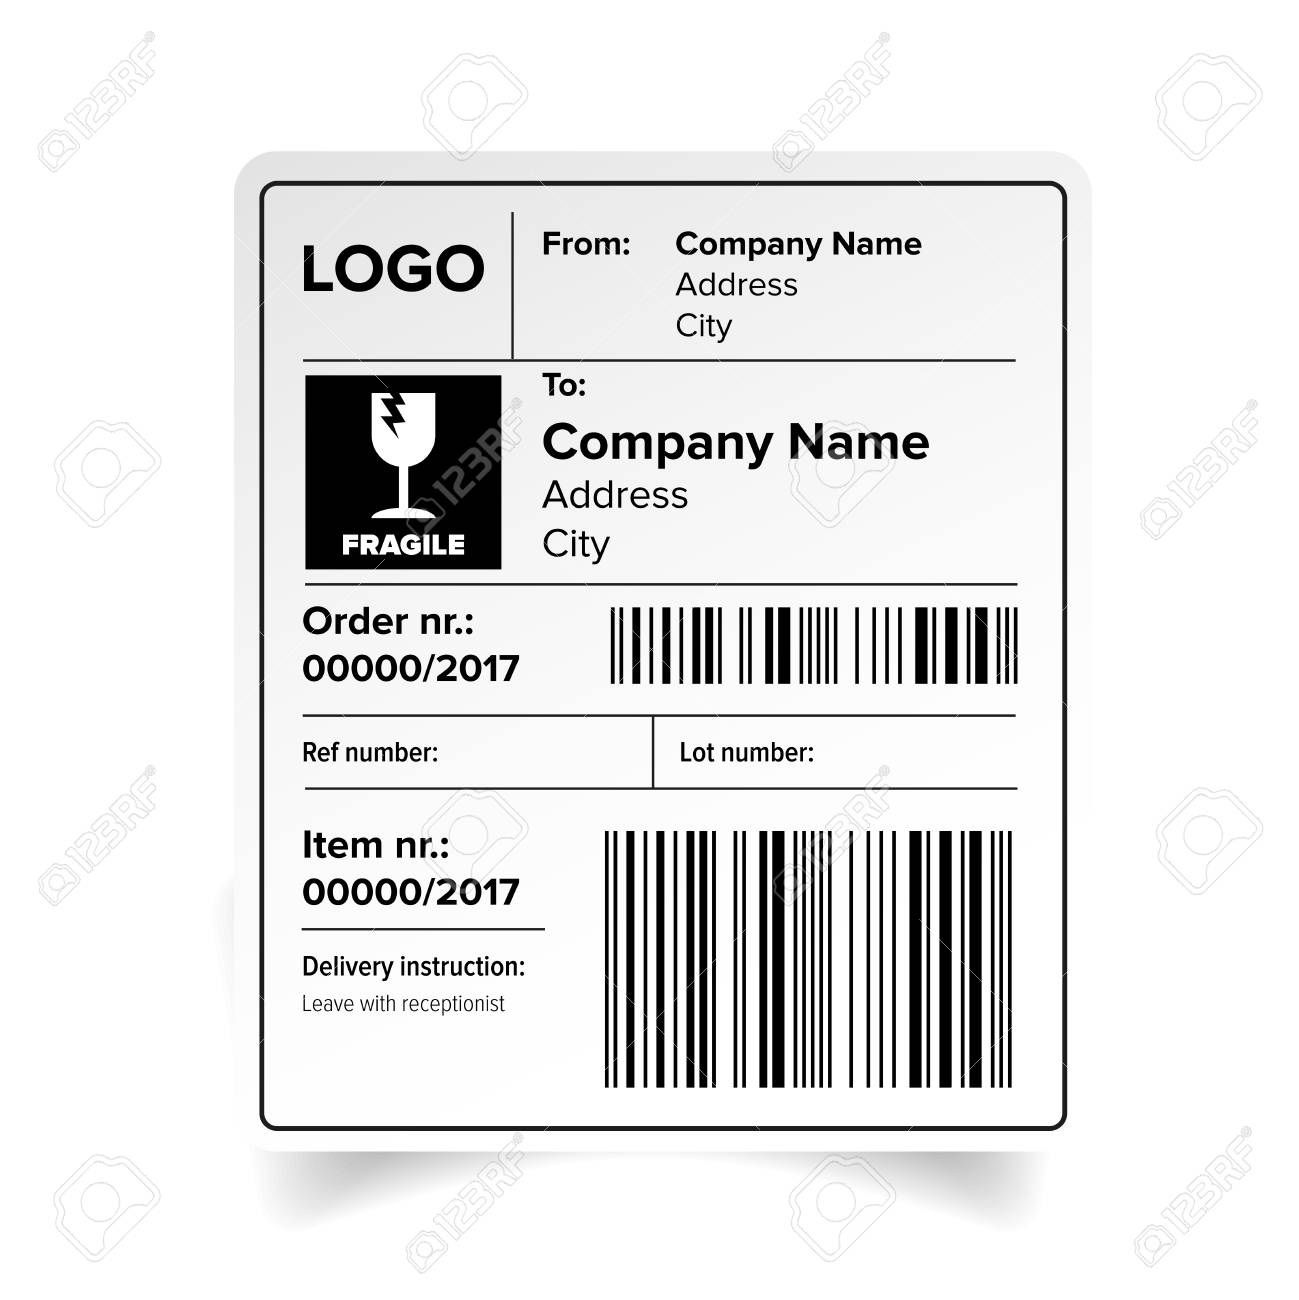 004 Staggering Free Shipping Label Template Photo  Format Word For MacFull